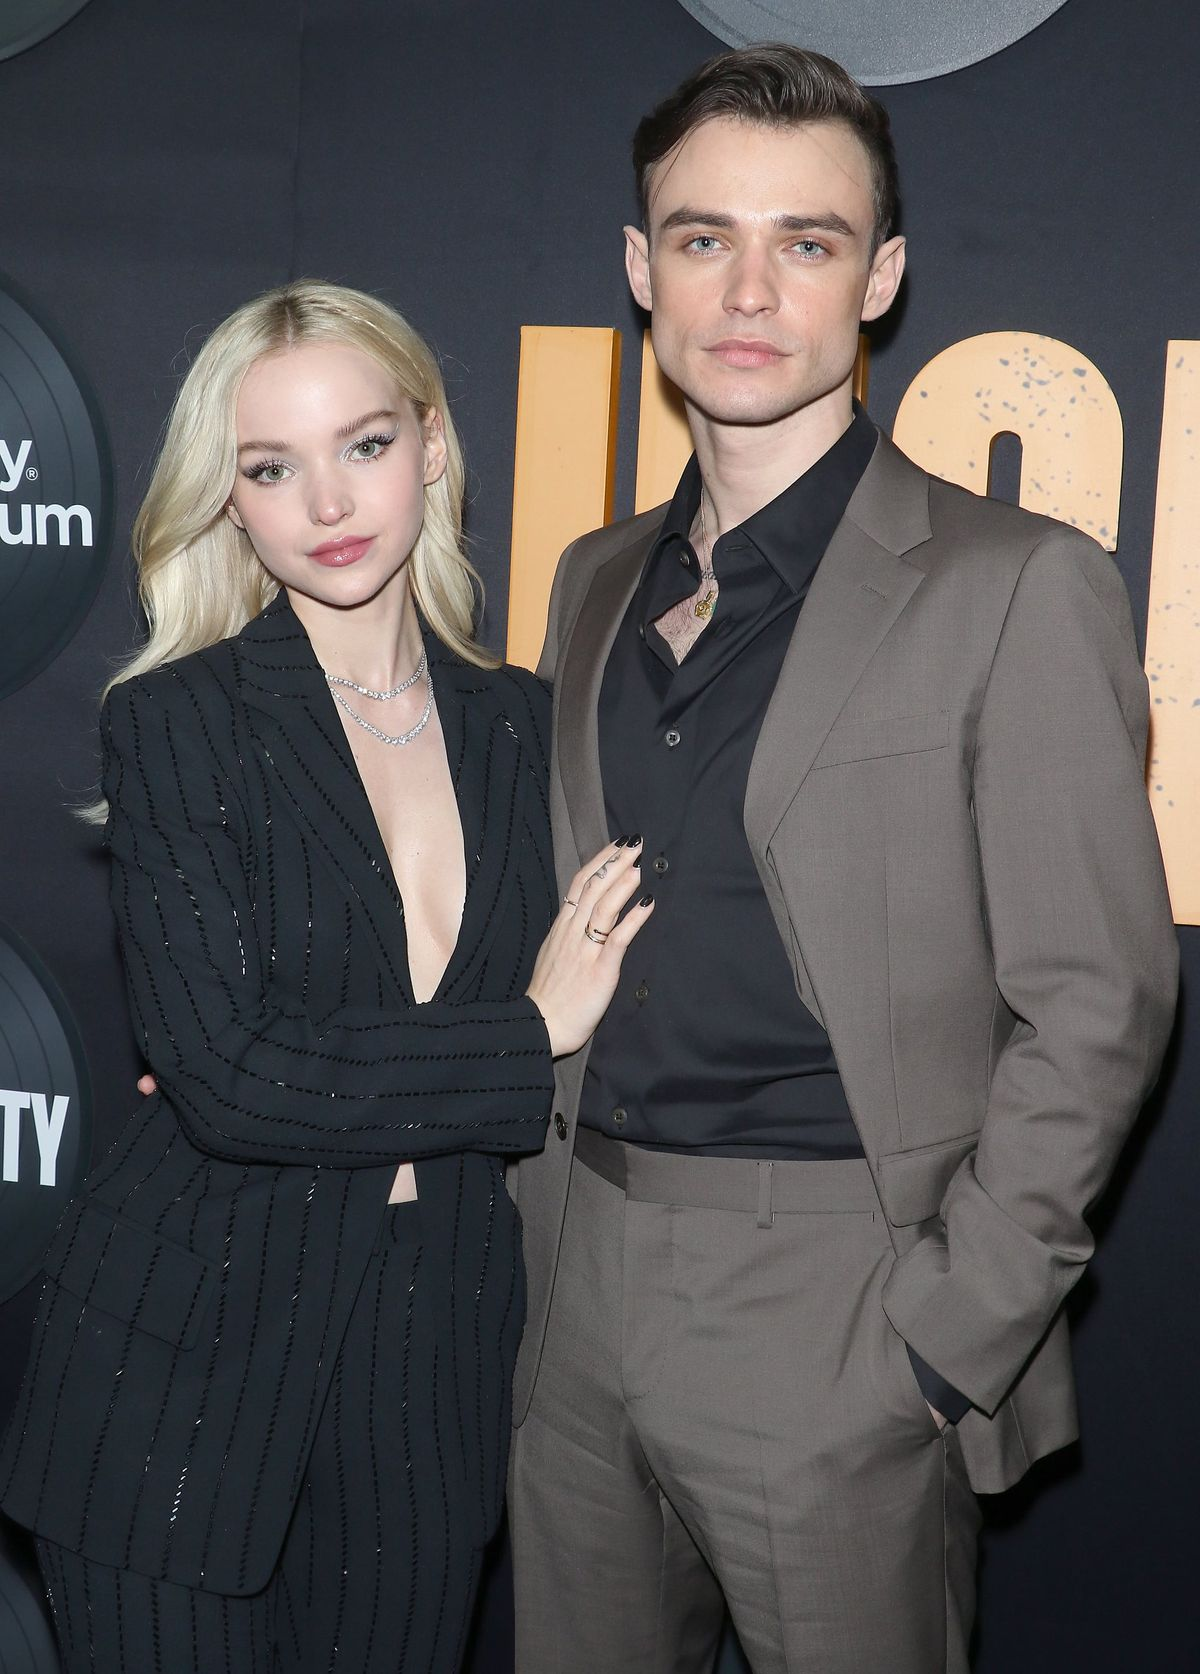 NEW YORK, NEW YORK - FEBRUARY 13: Dove Cameron and Thomas Doherty attend the Hulu's